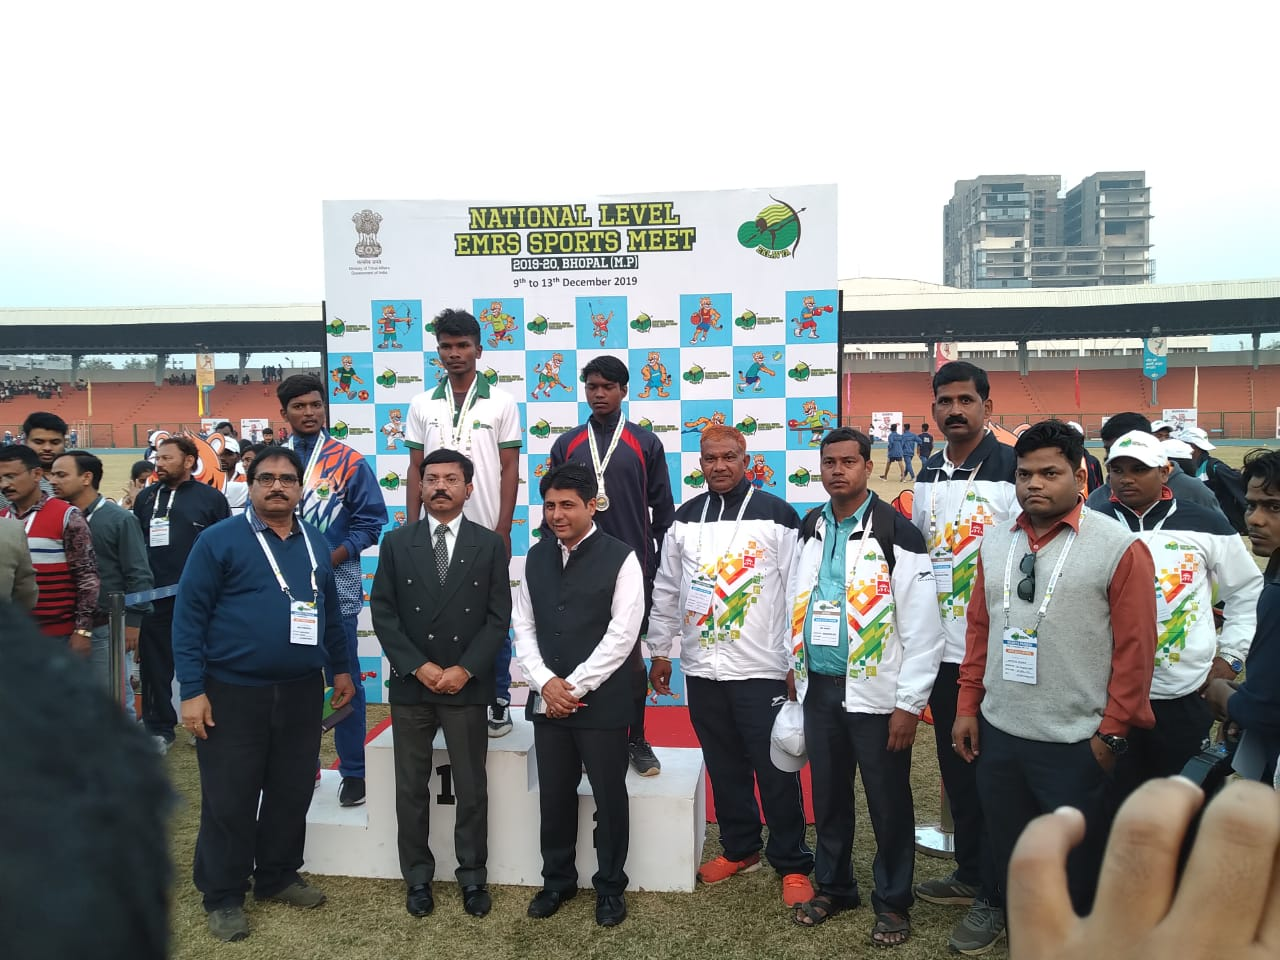 EMRS Sports Meet - Day 3 Medal Ceremony